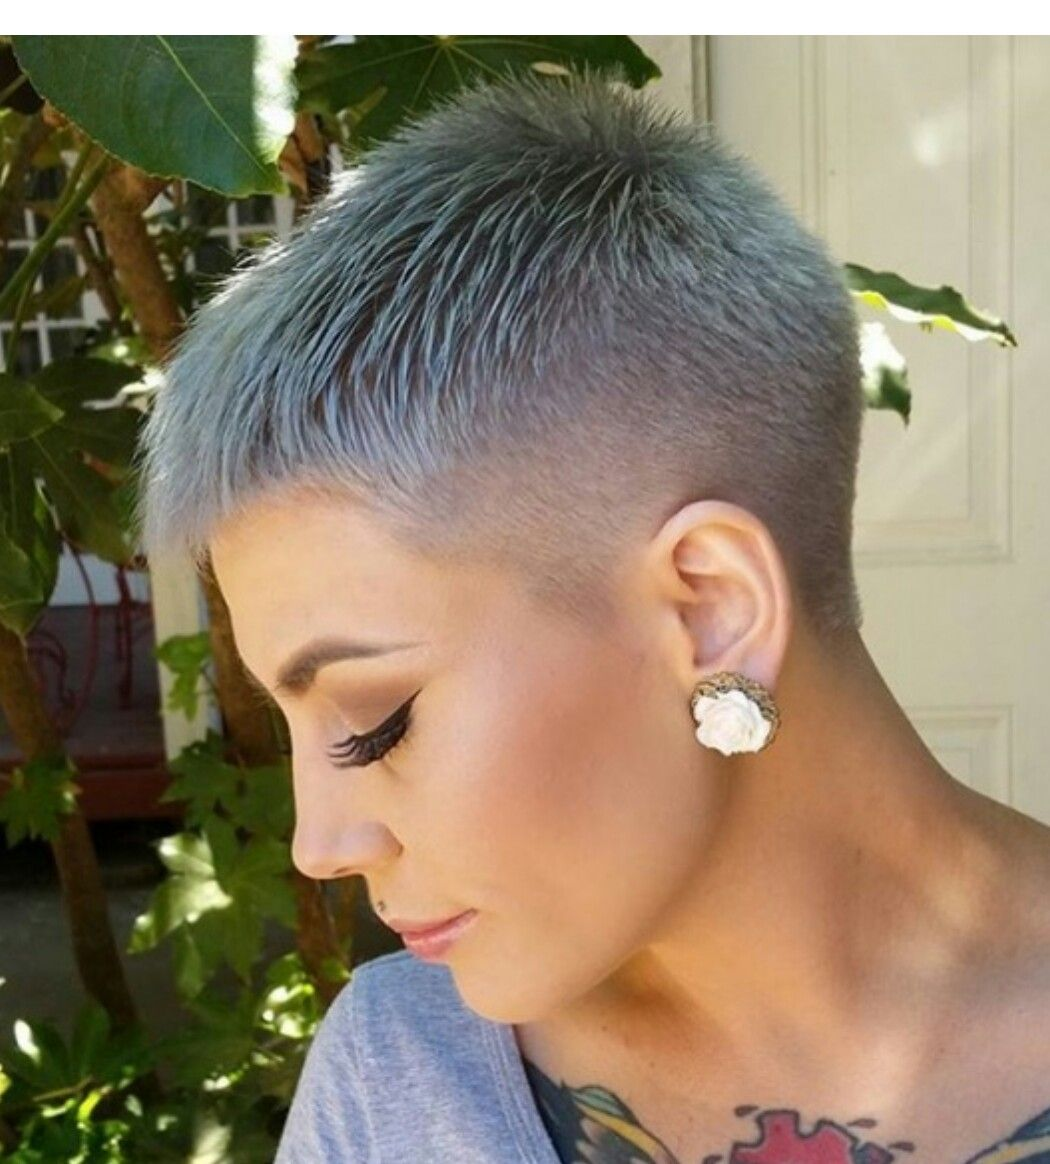 Pin by brenda on gave kapsels pinterest cut shorts hair cuts and short hair - Coupe undercut femme ...